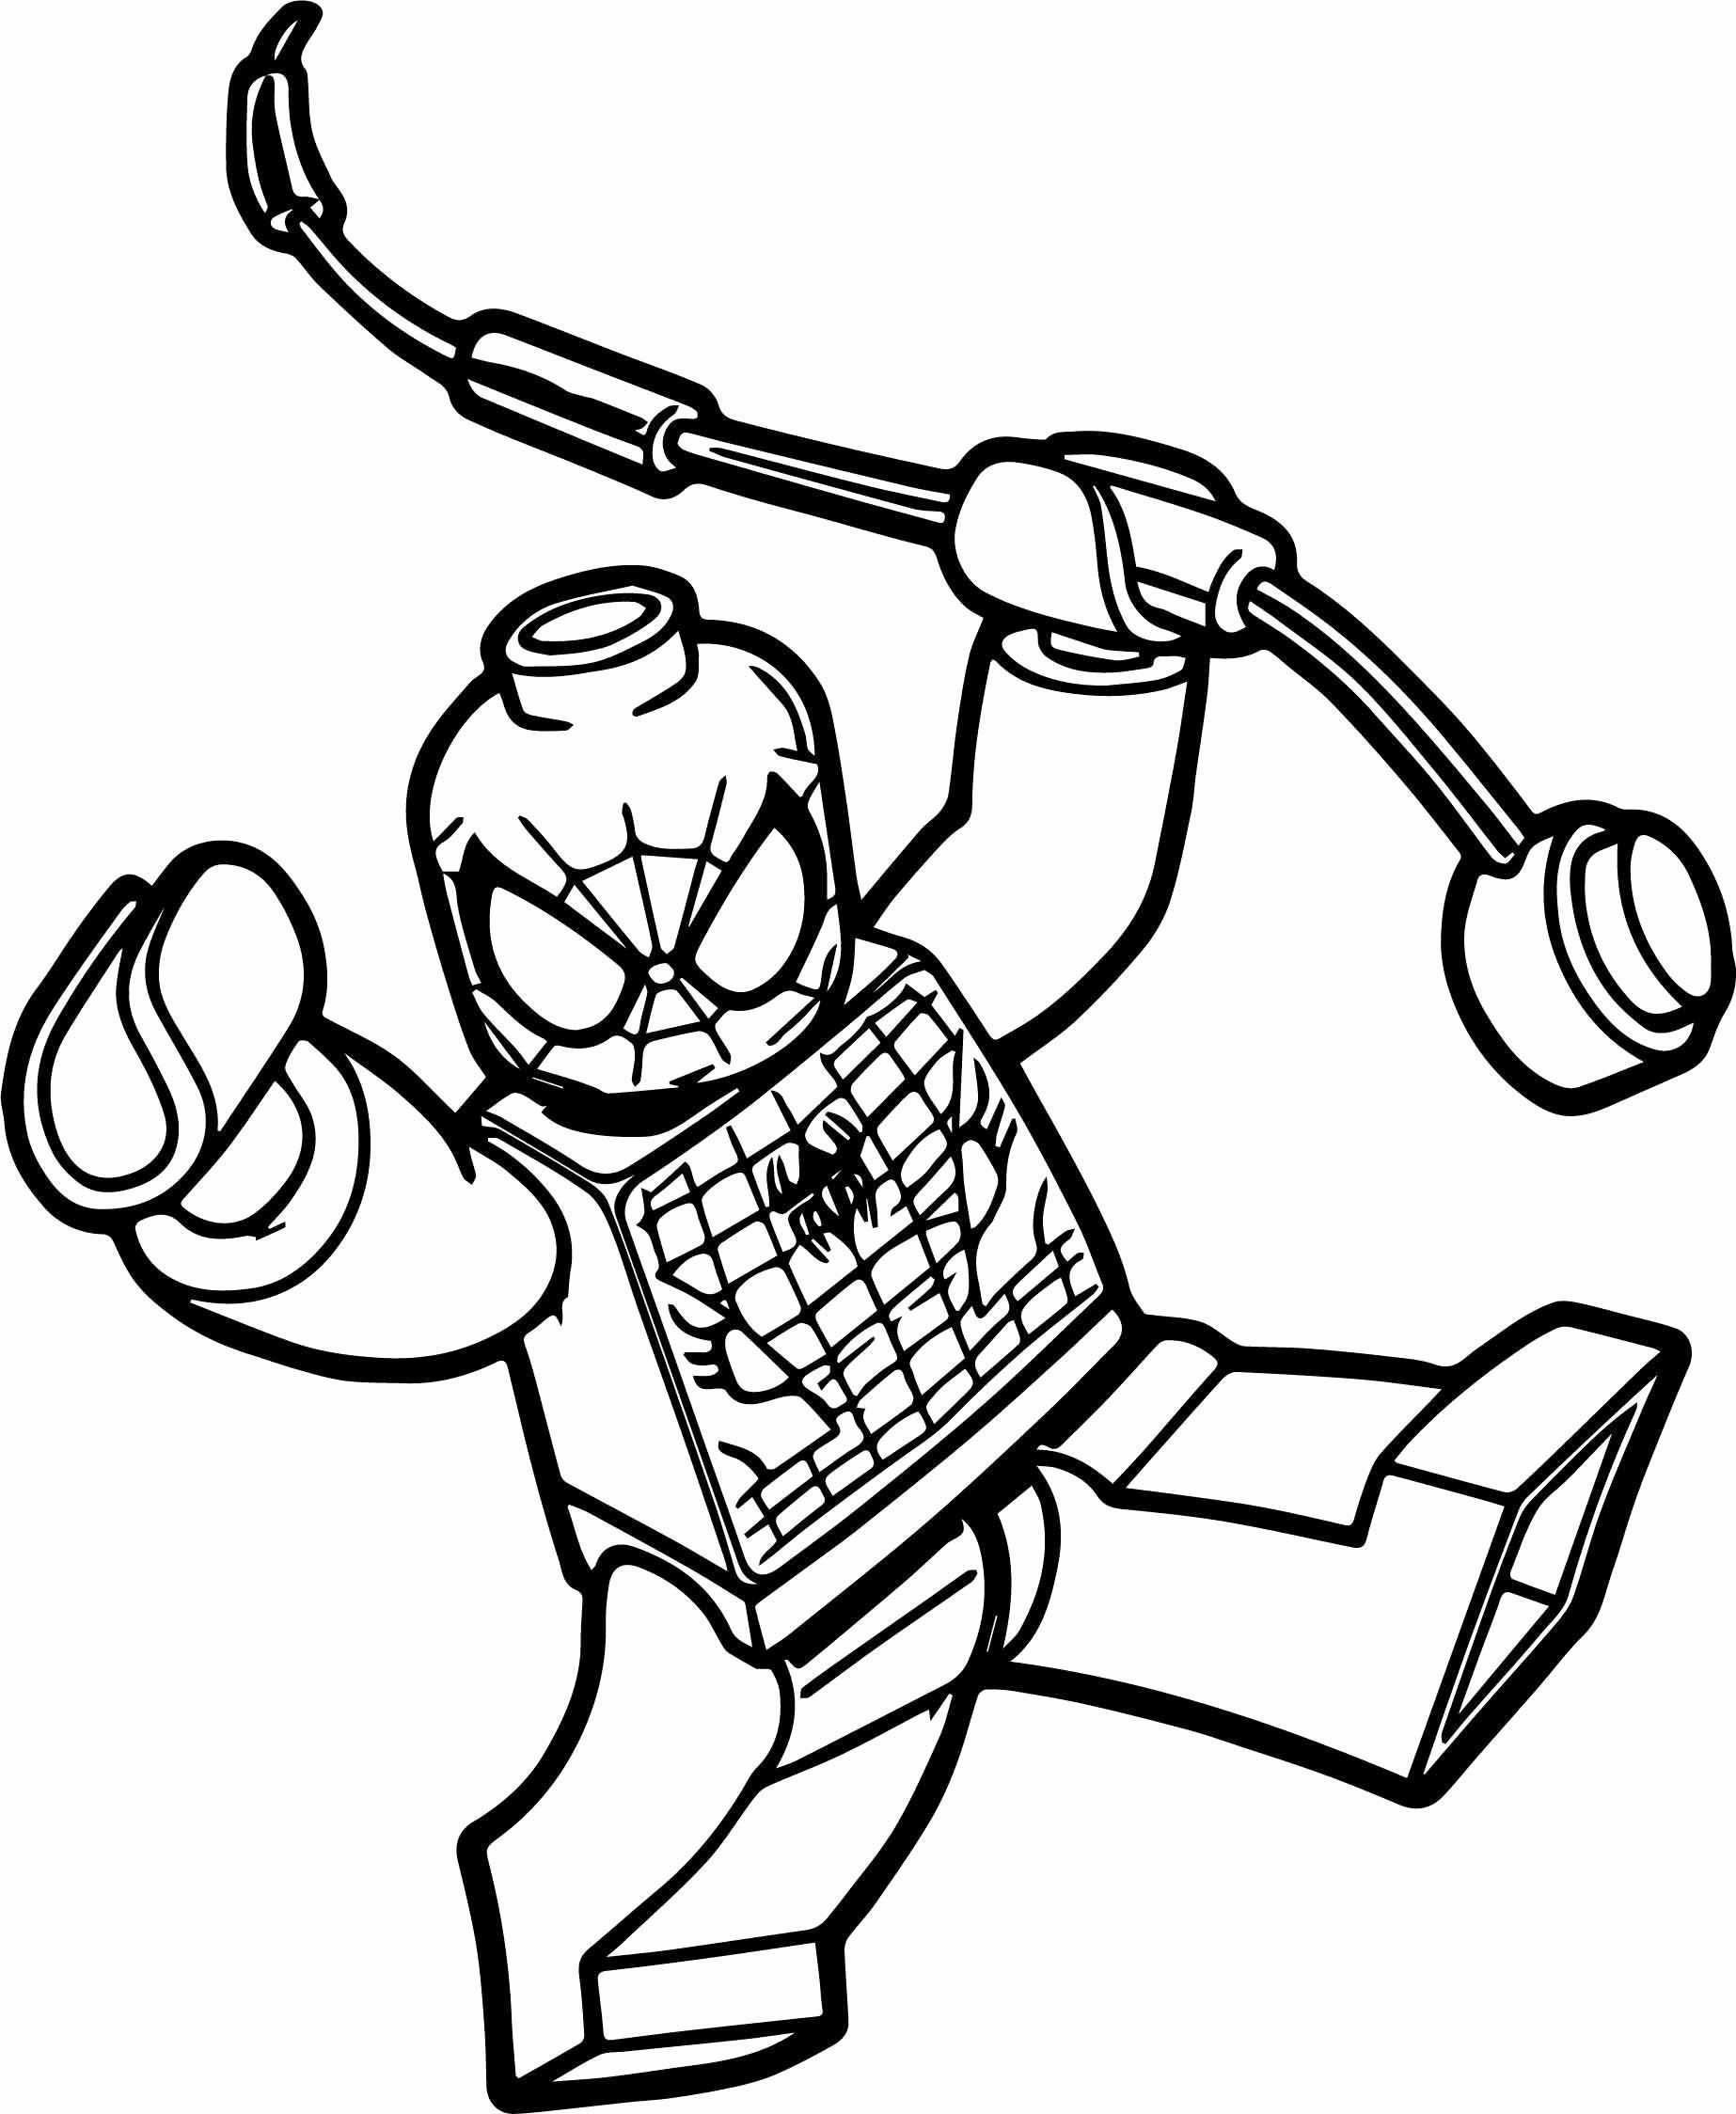 Sports Coloring Book Pdf Best Of Spiderman Coloring Pages Book Coloring Legoideasforadul Spiderman Coloring Lego Coloring Pages Cartoon Coloring Pages